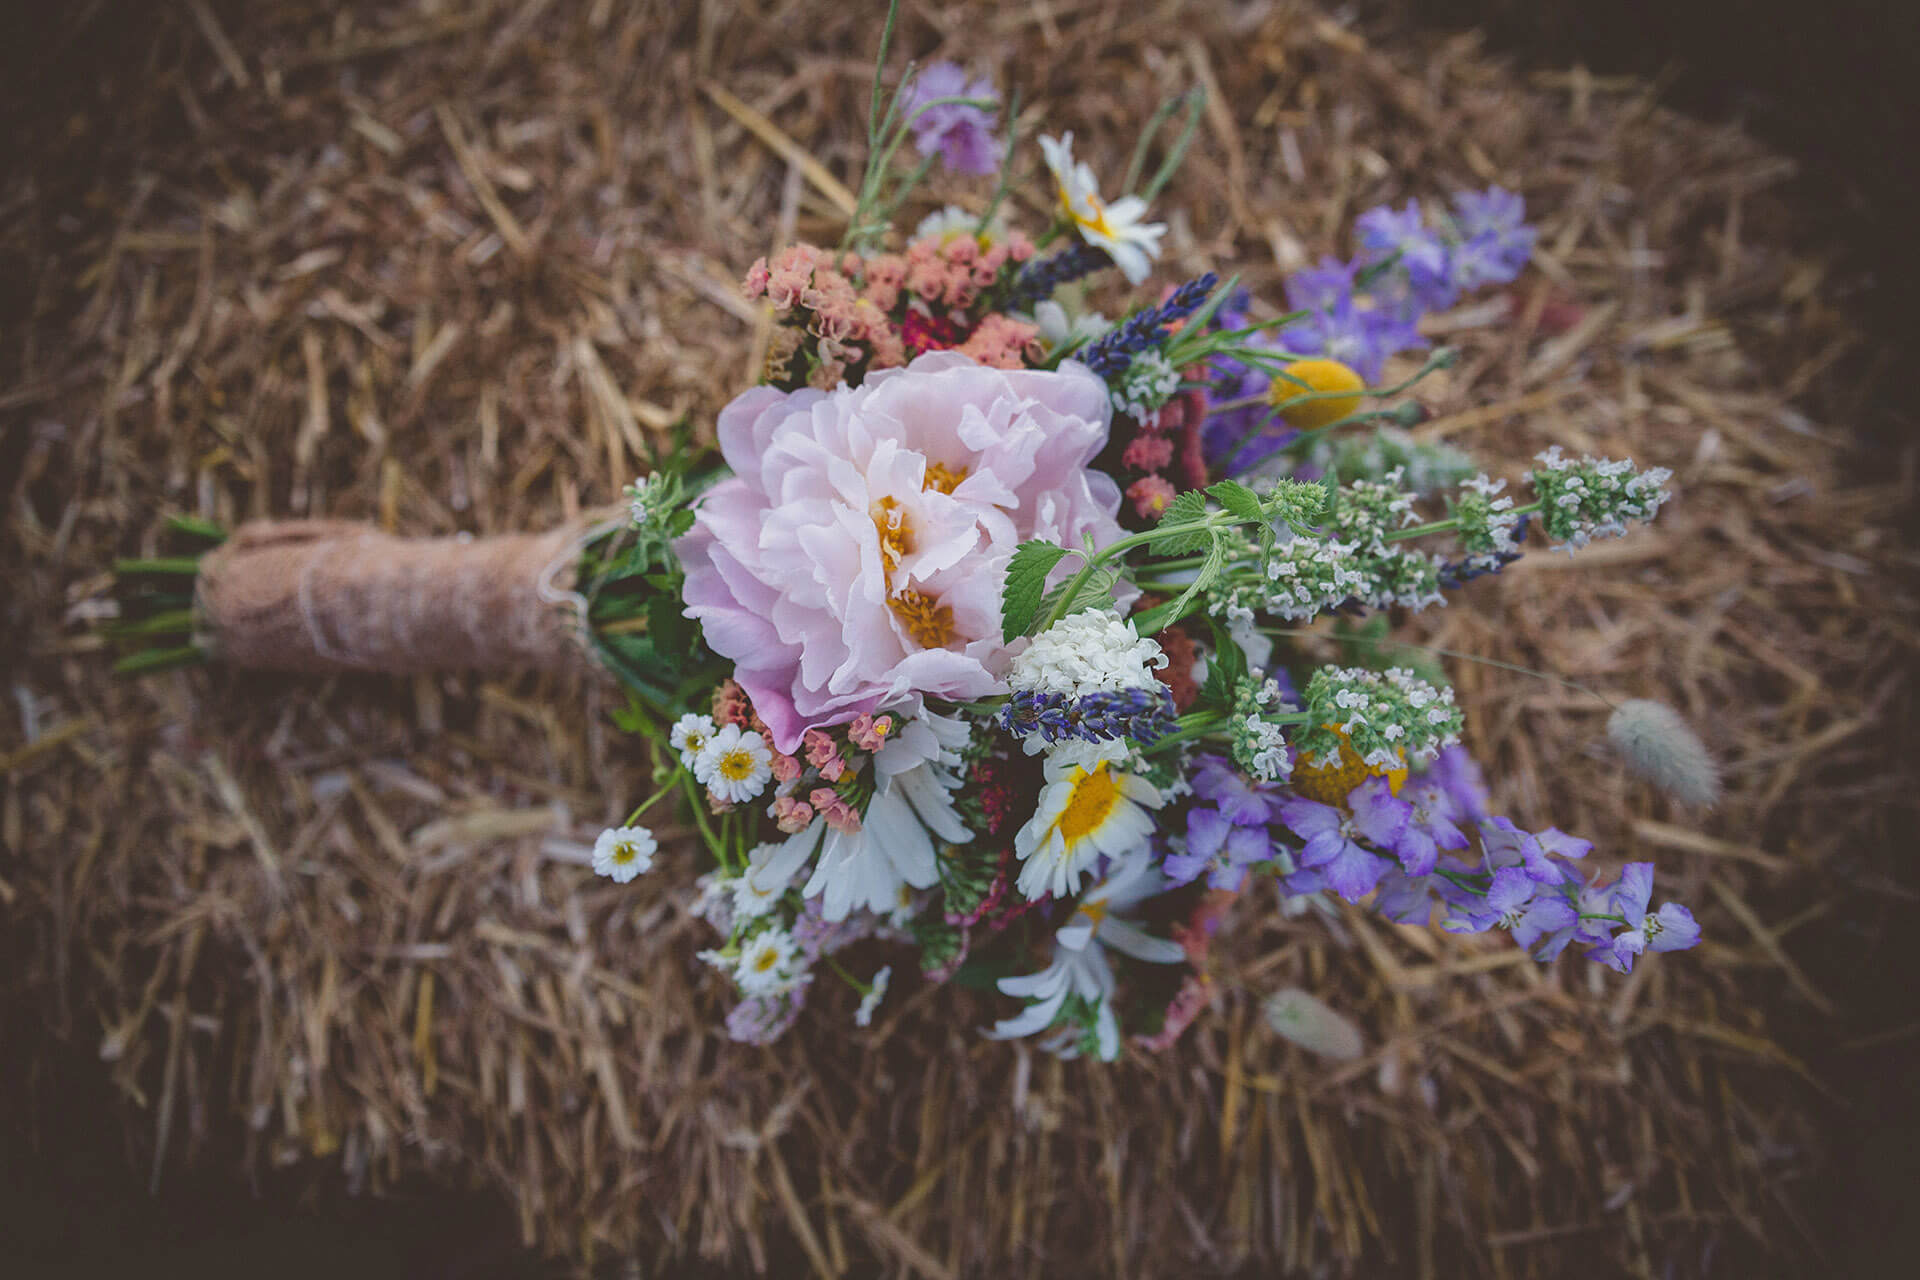 Flowers on a hay bale